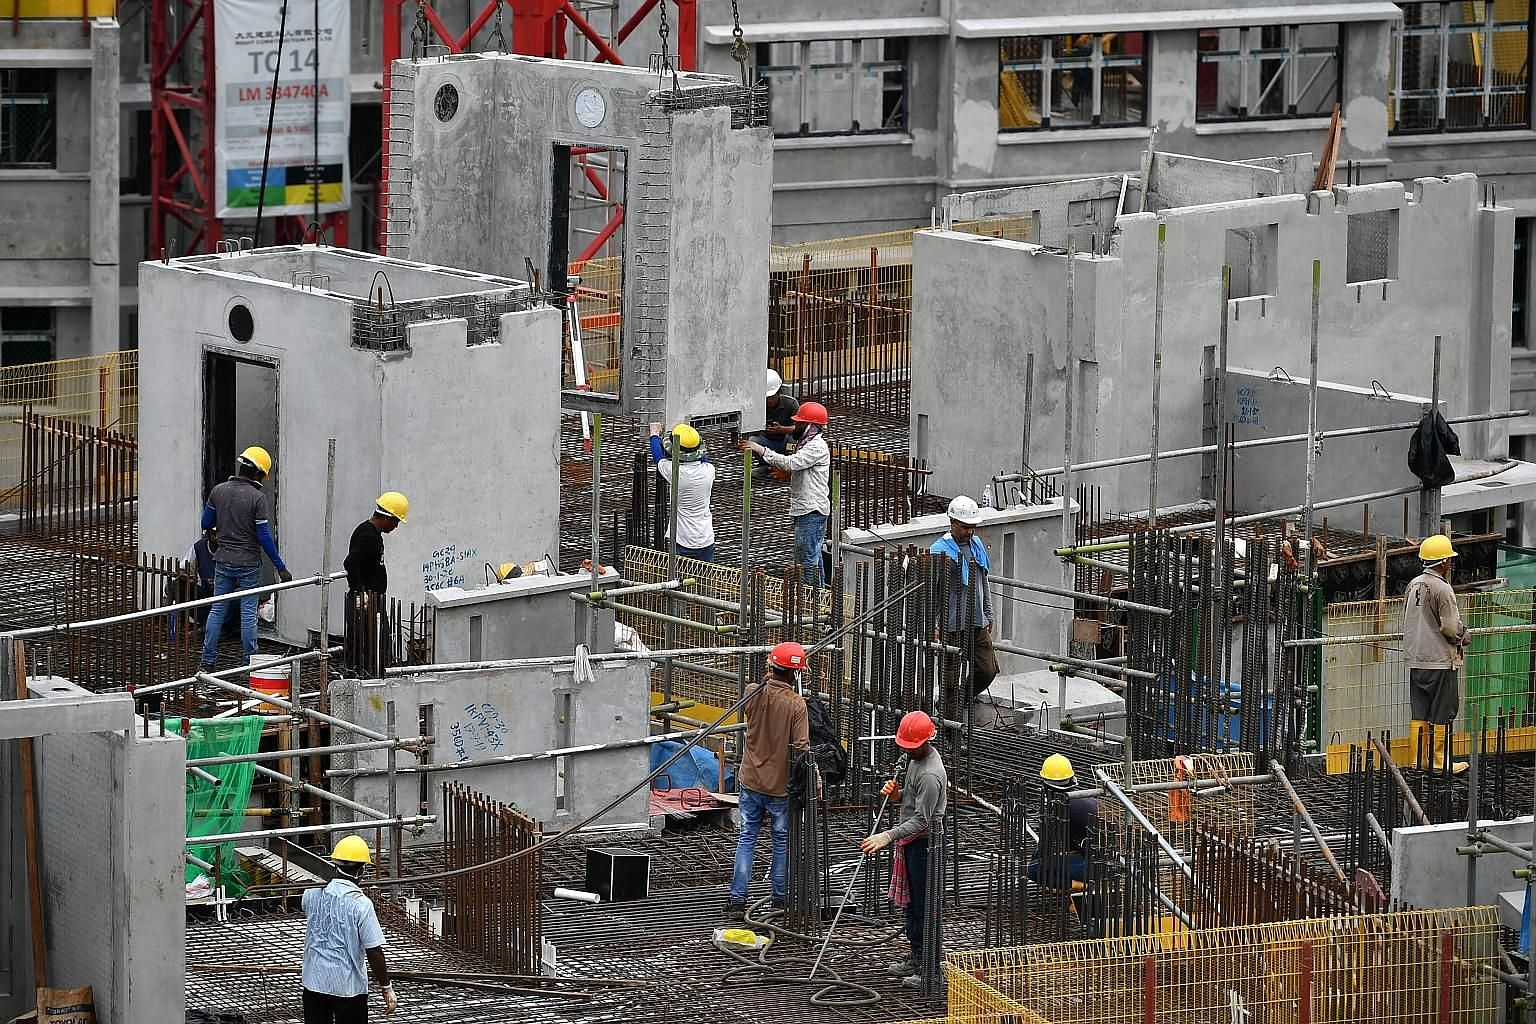 Workers at the construction site for HDB's Ubi Grove project. Covid-19 has made clear that a fundamental review is needed of the desired outcomes of economic and other activities as well as full costing of foreign labour. These will bring the numbers